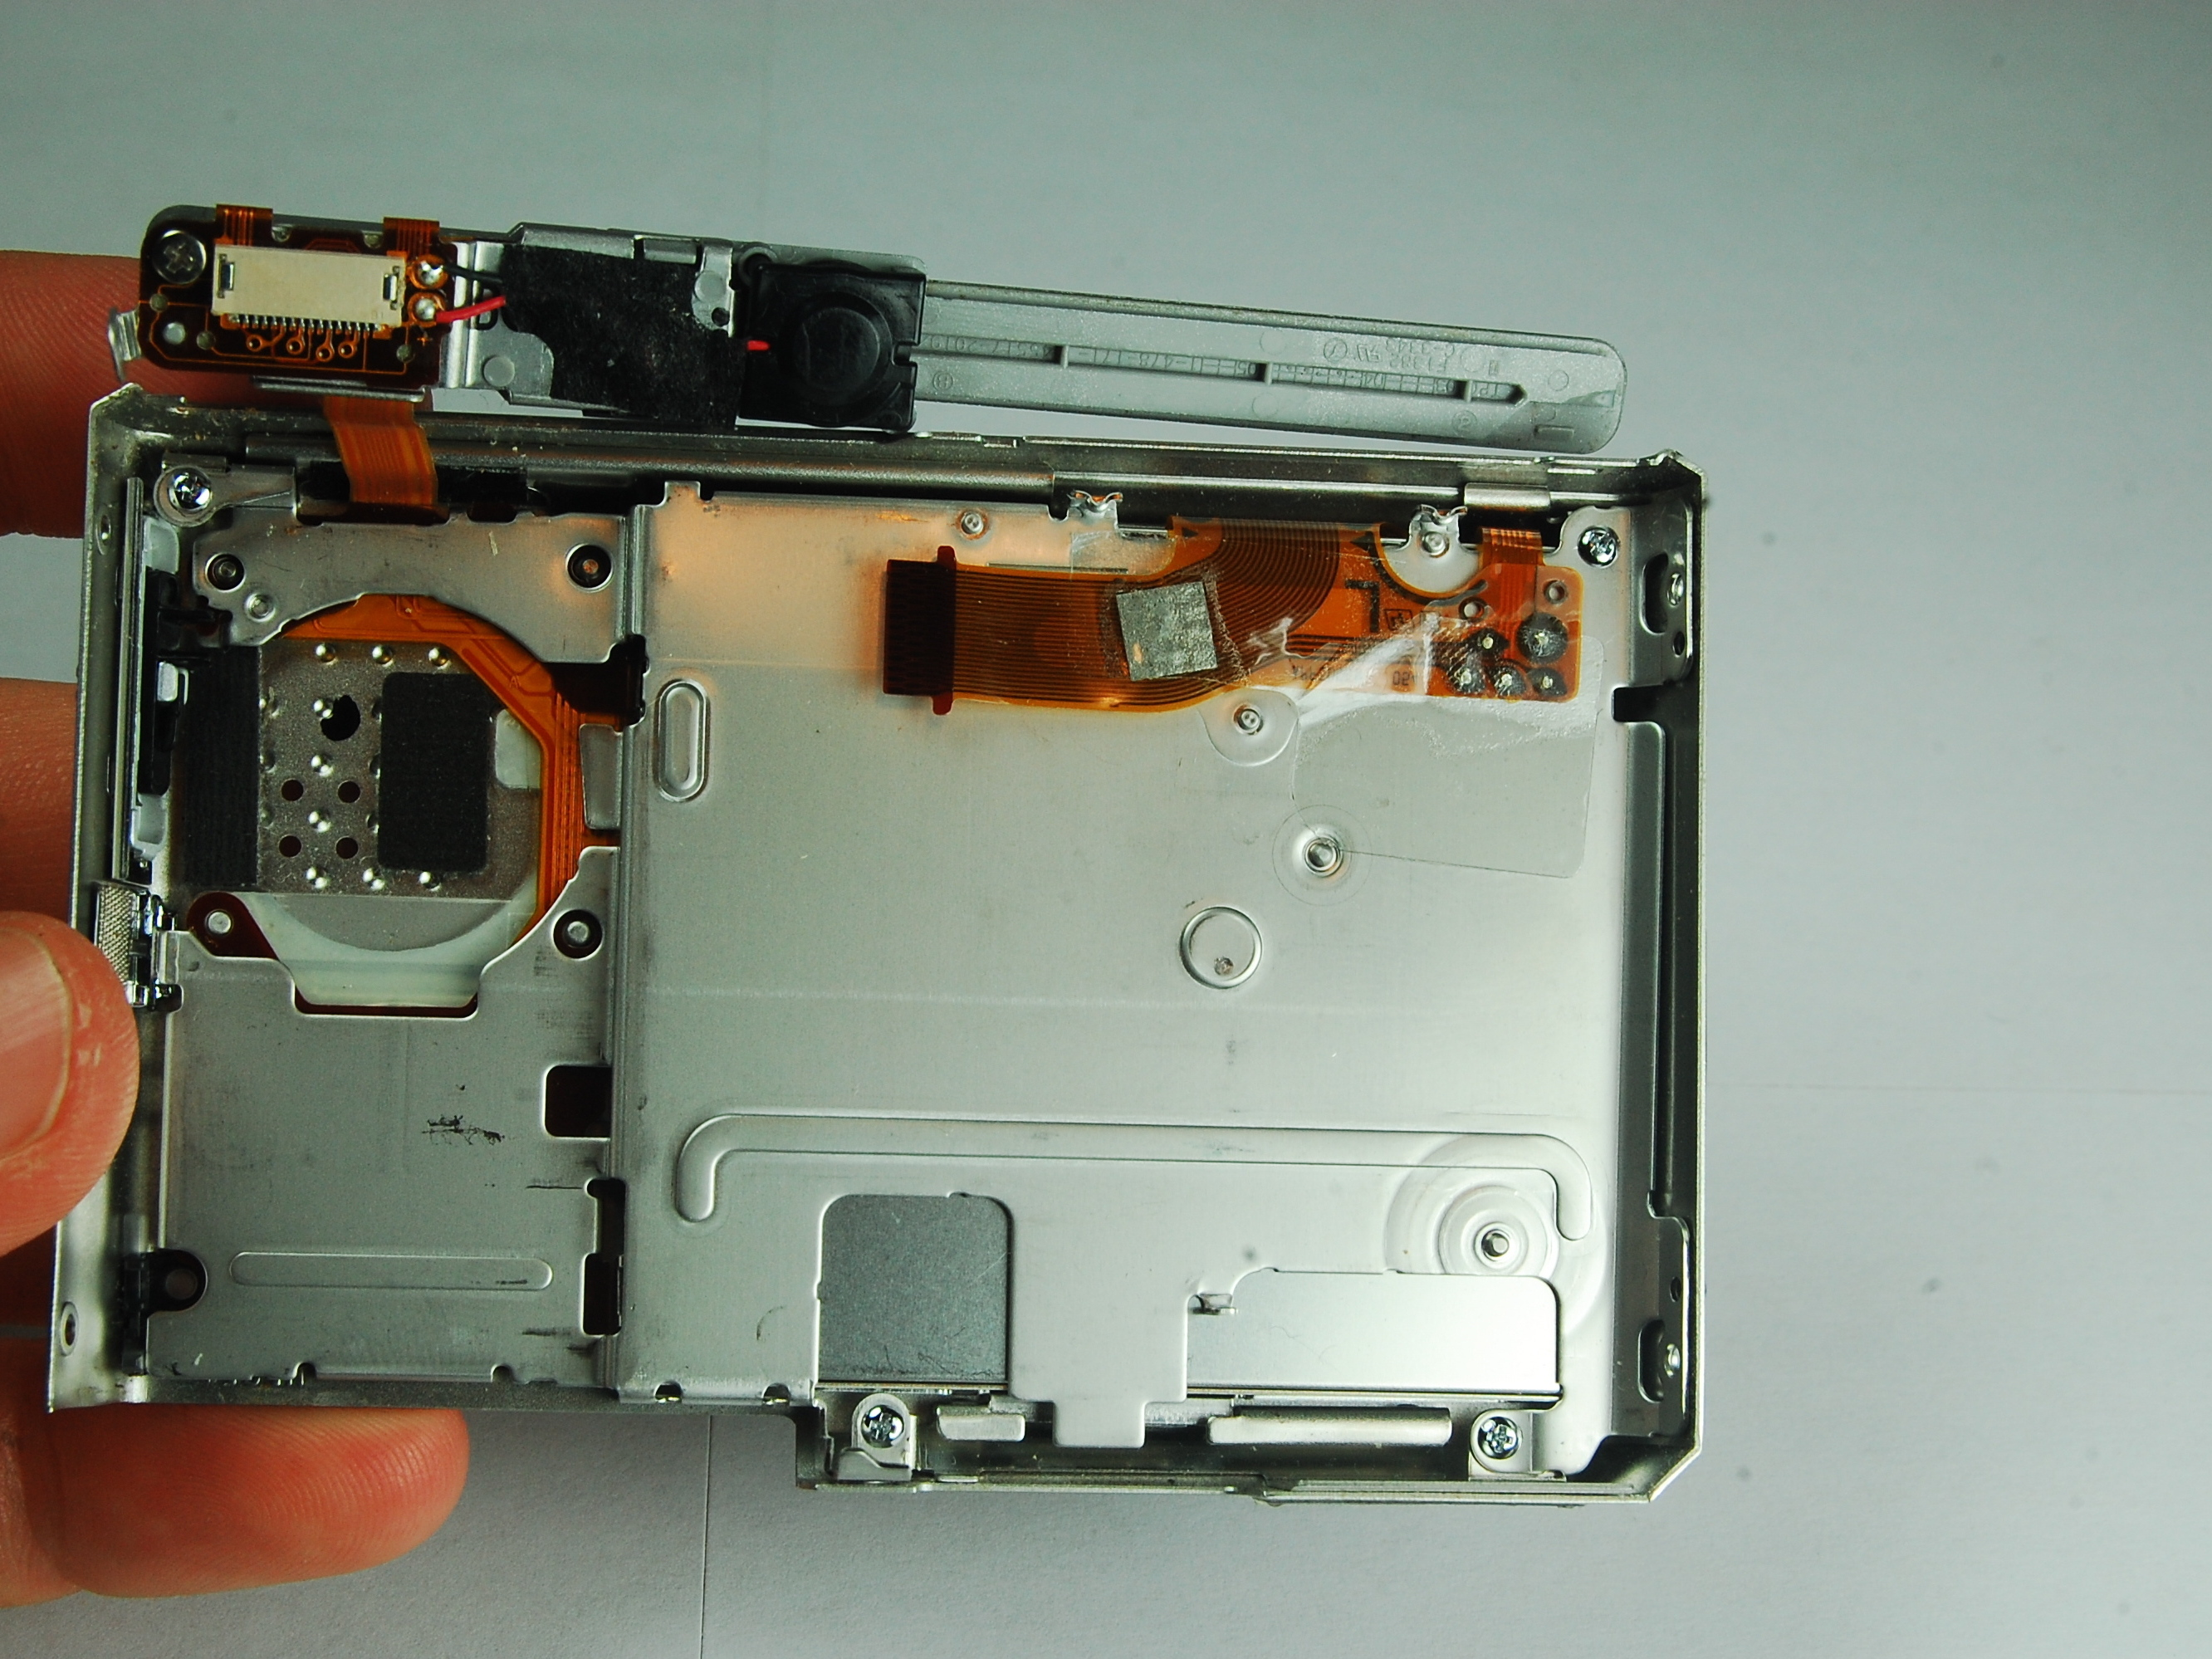 Lcd Repair Sony Cyber Shot Dsc T1 Lcd Replacement Ifixit